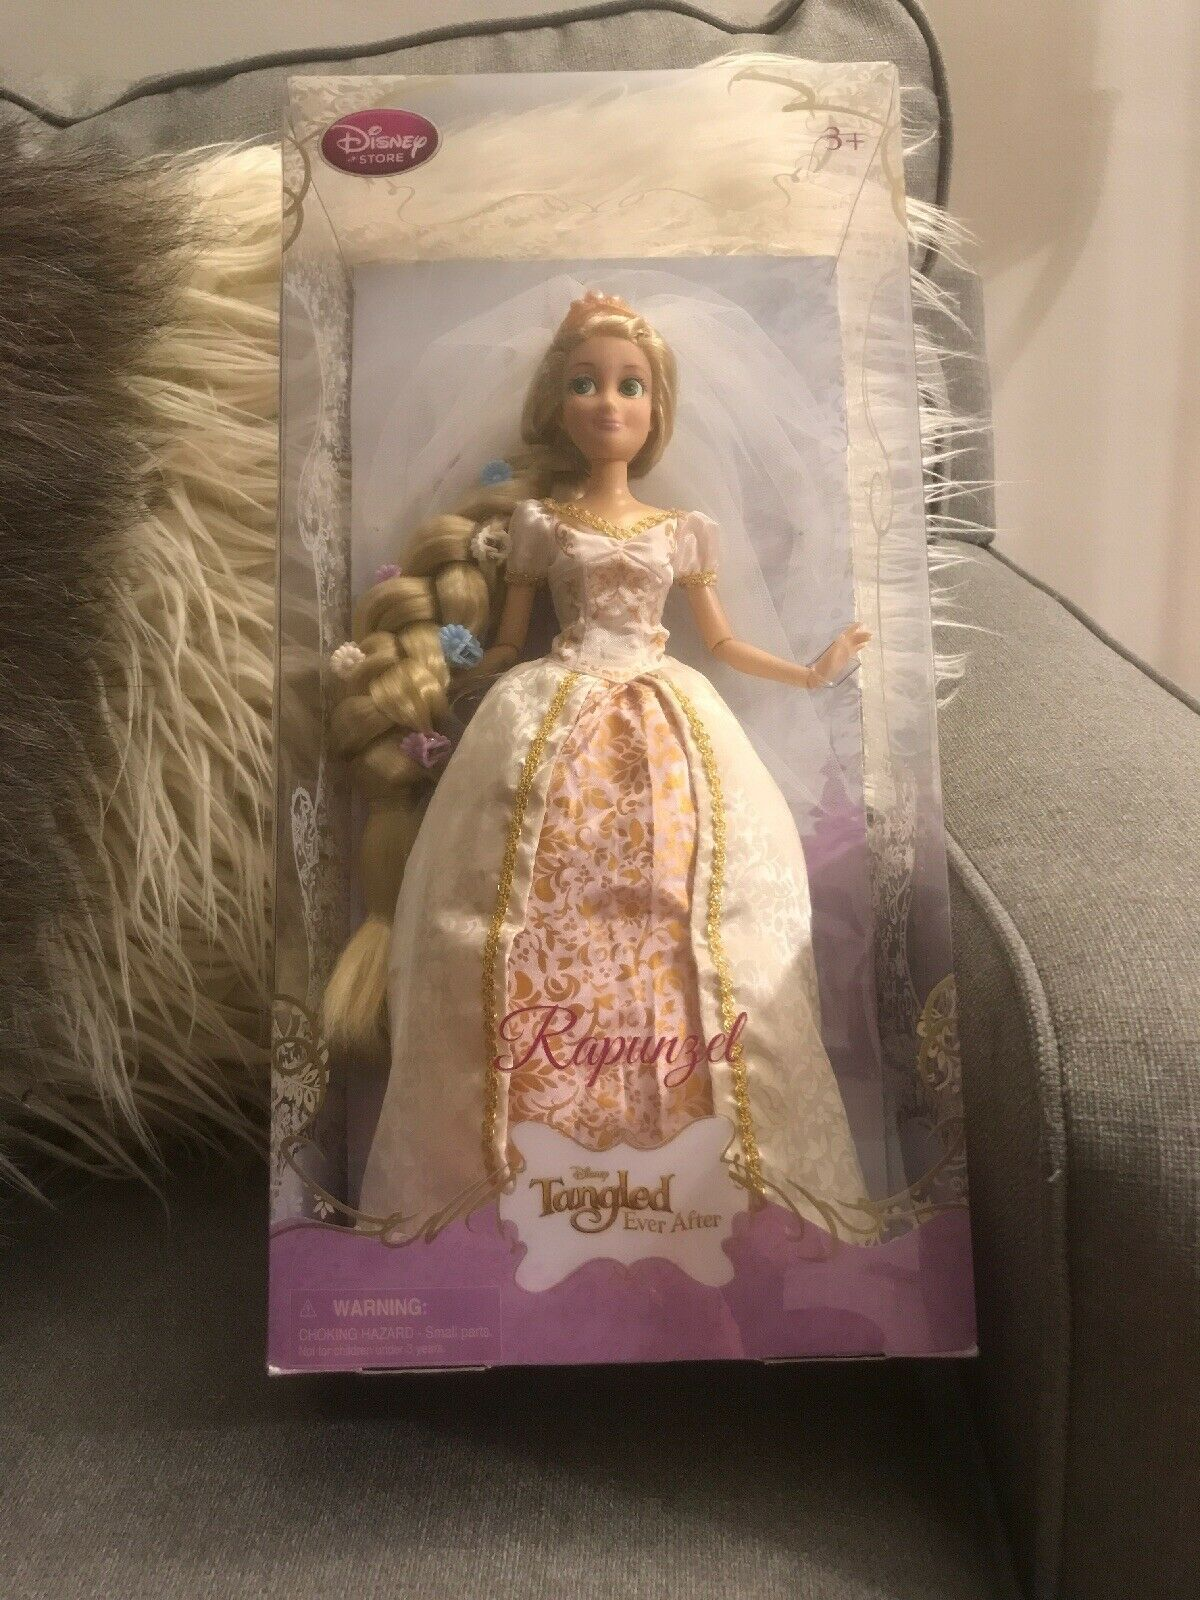 Disney Exclusive Tangled Ever After 12 Inch Rapunzel Wedding Doll Flower In Hair Hair Tangles Ideas Of Hair Tangles In 2020 Rapunzel Wedding Wedding Doll Tangled